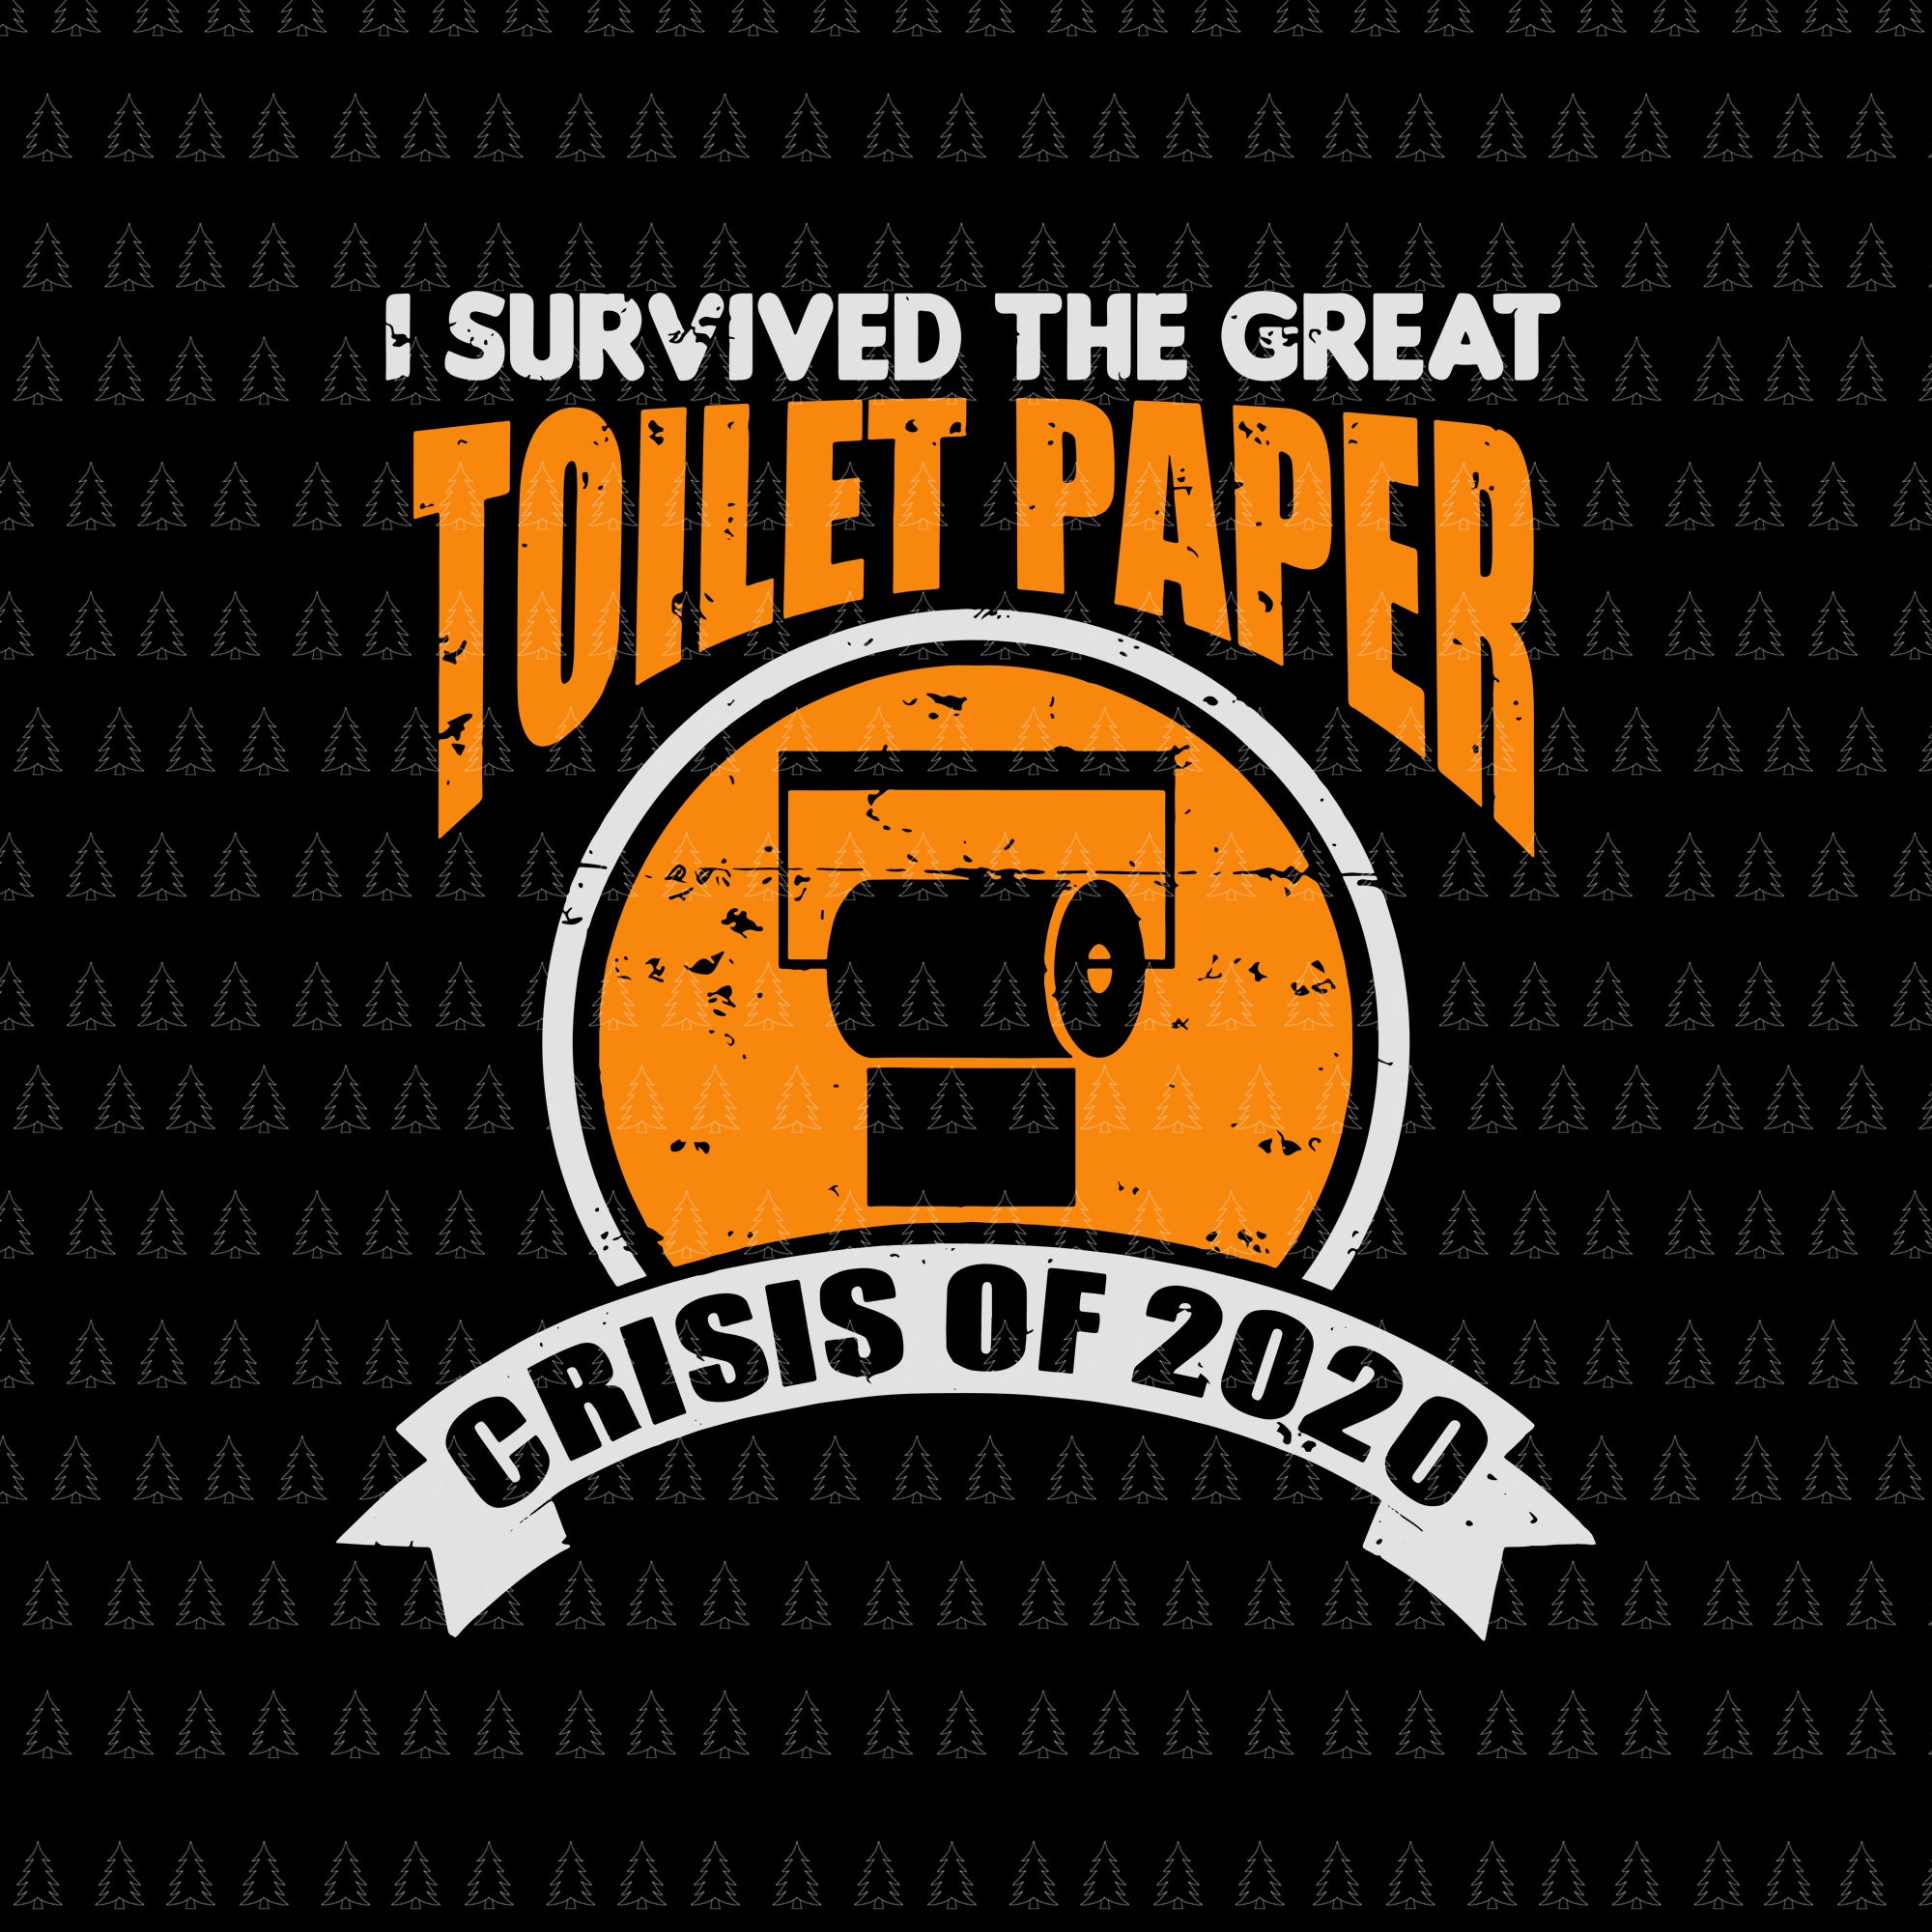 I survived the great toilet paper crisis of 2020 svg, i survived the great toilet paper crisis of 2020, social distancin svg, png, eps, dxf file